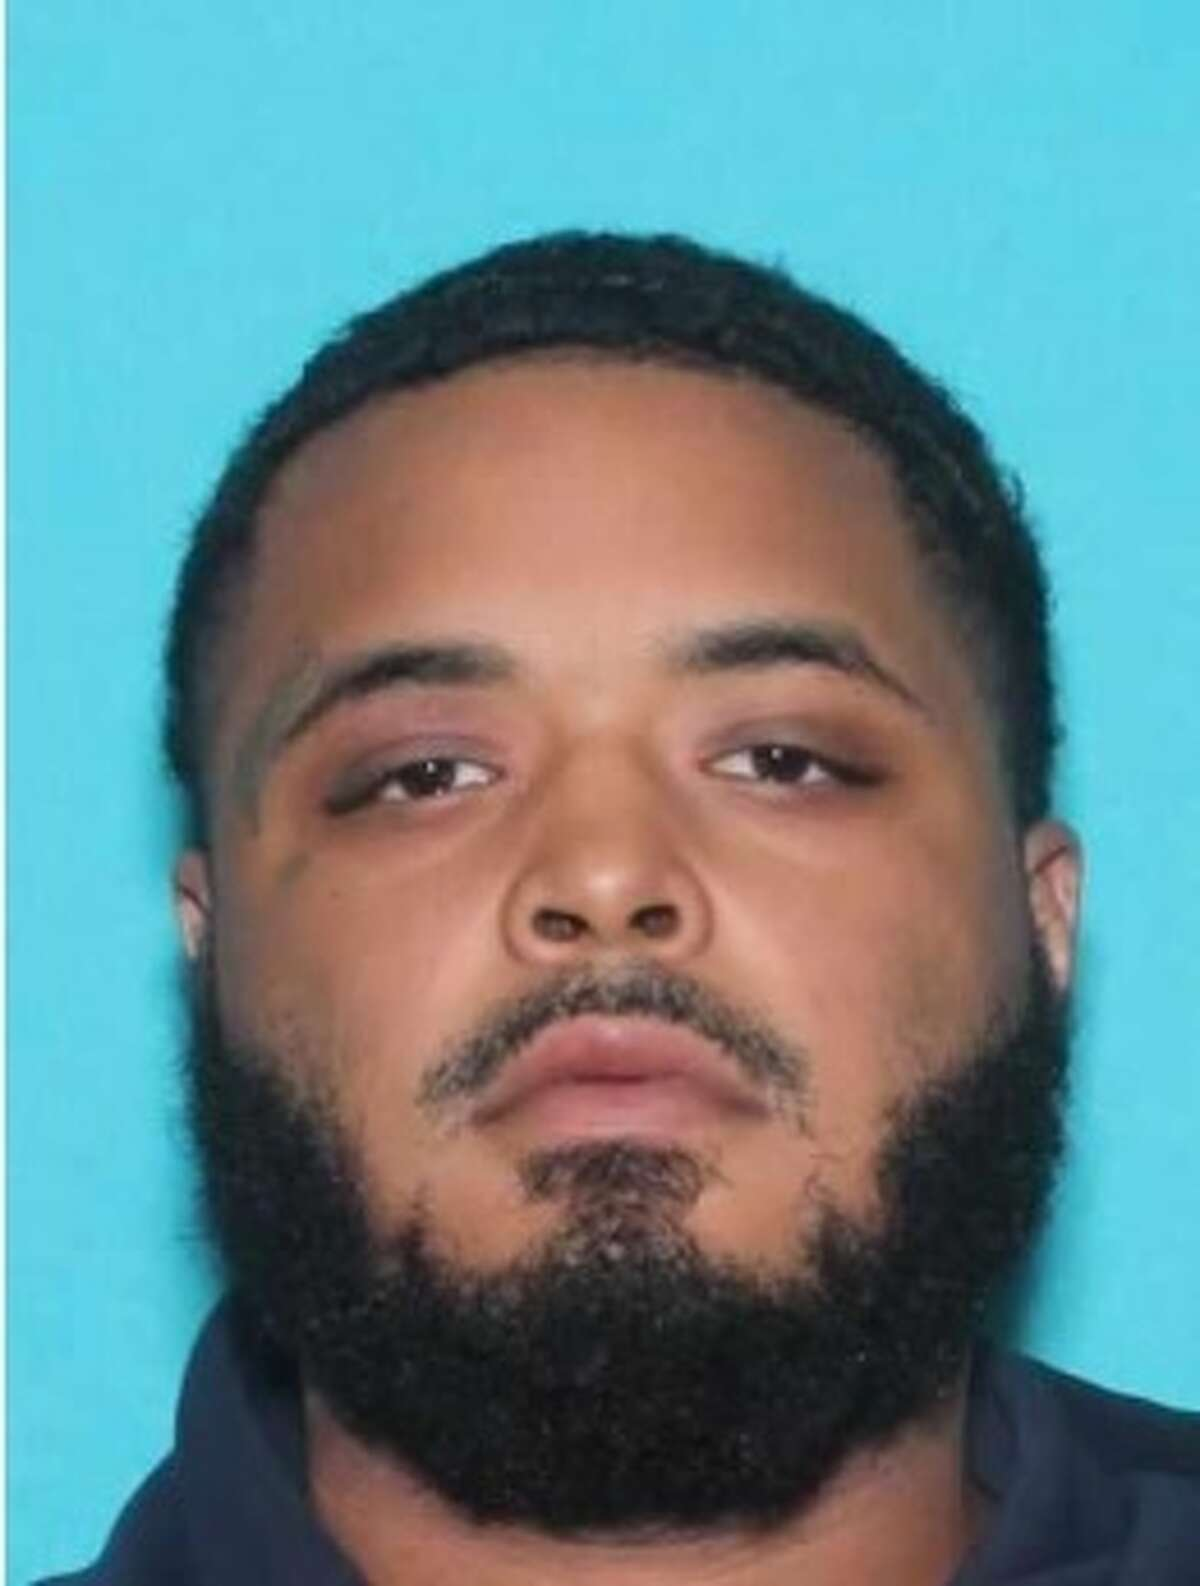 Devion Hurtado, 23, has been charged with capital murder in the Nov. 4 slaying of former University of Houston football player Ka'Darian Smith, police said.